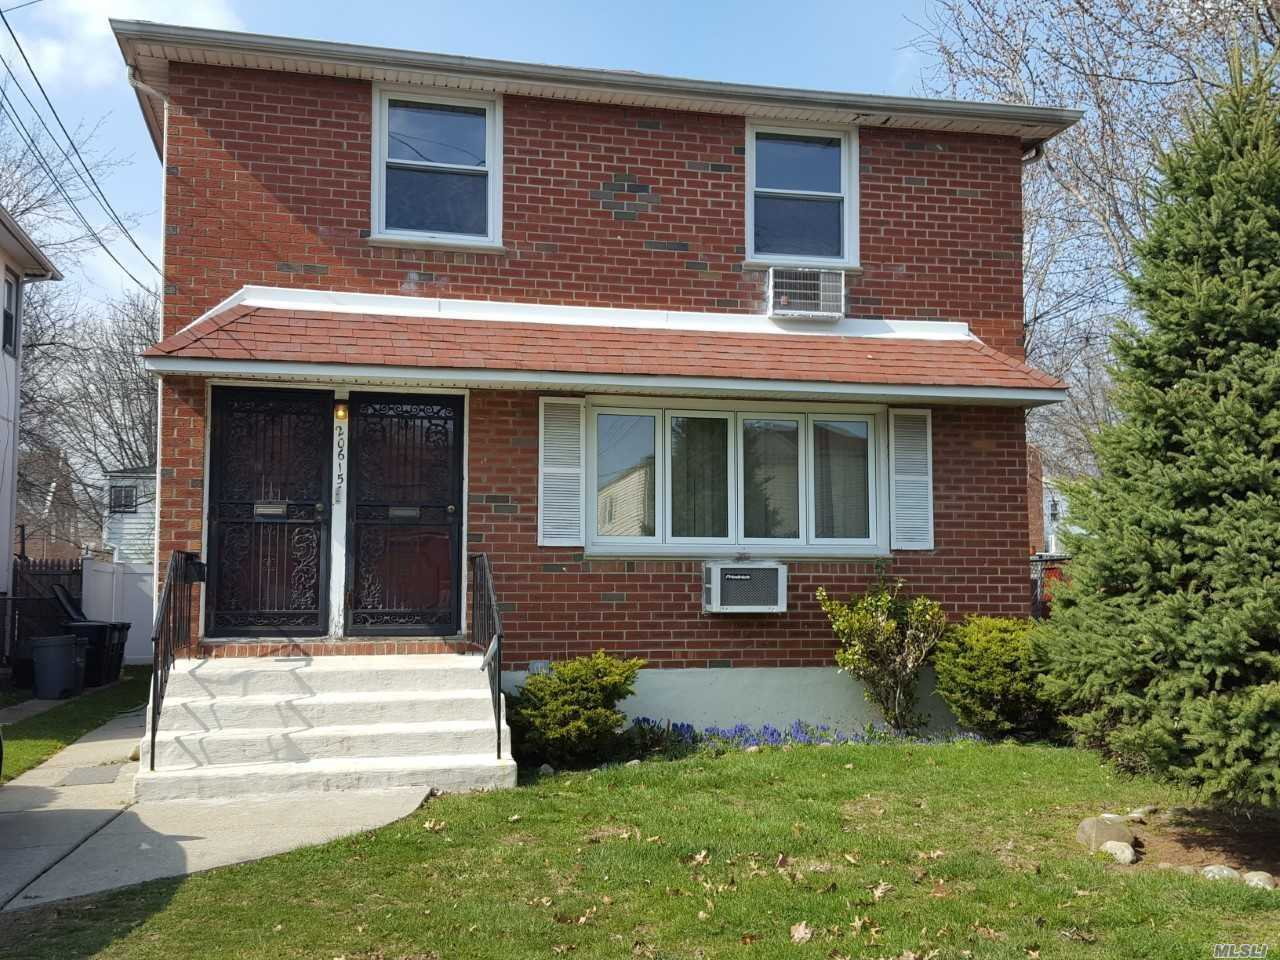 .Brick 2 Family Located In Bayside 6 Bedrooms 2 Full Bath With Finished Basement